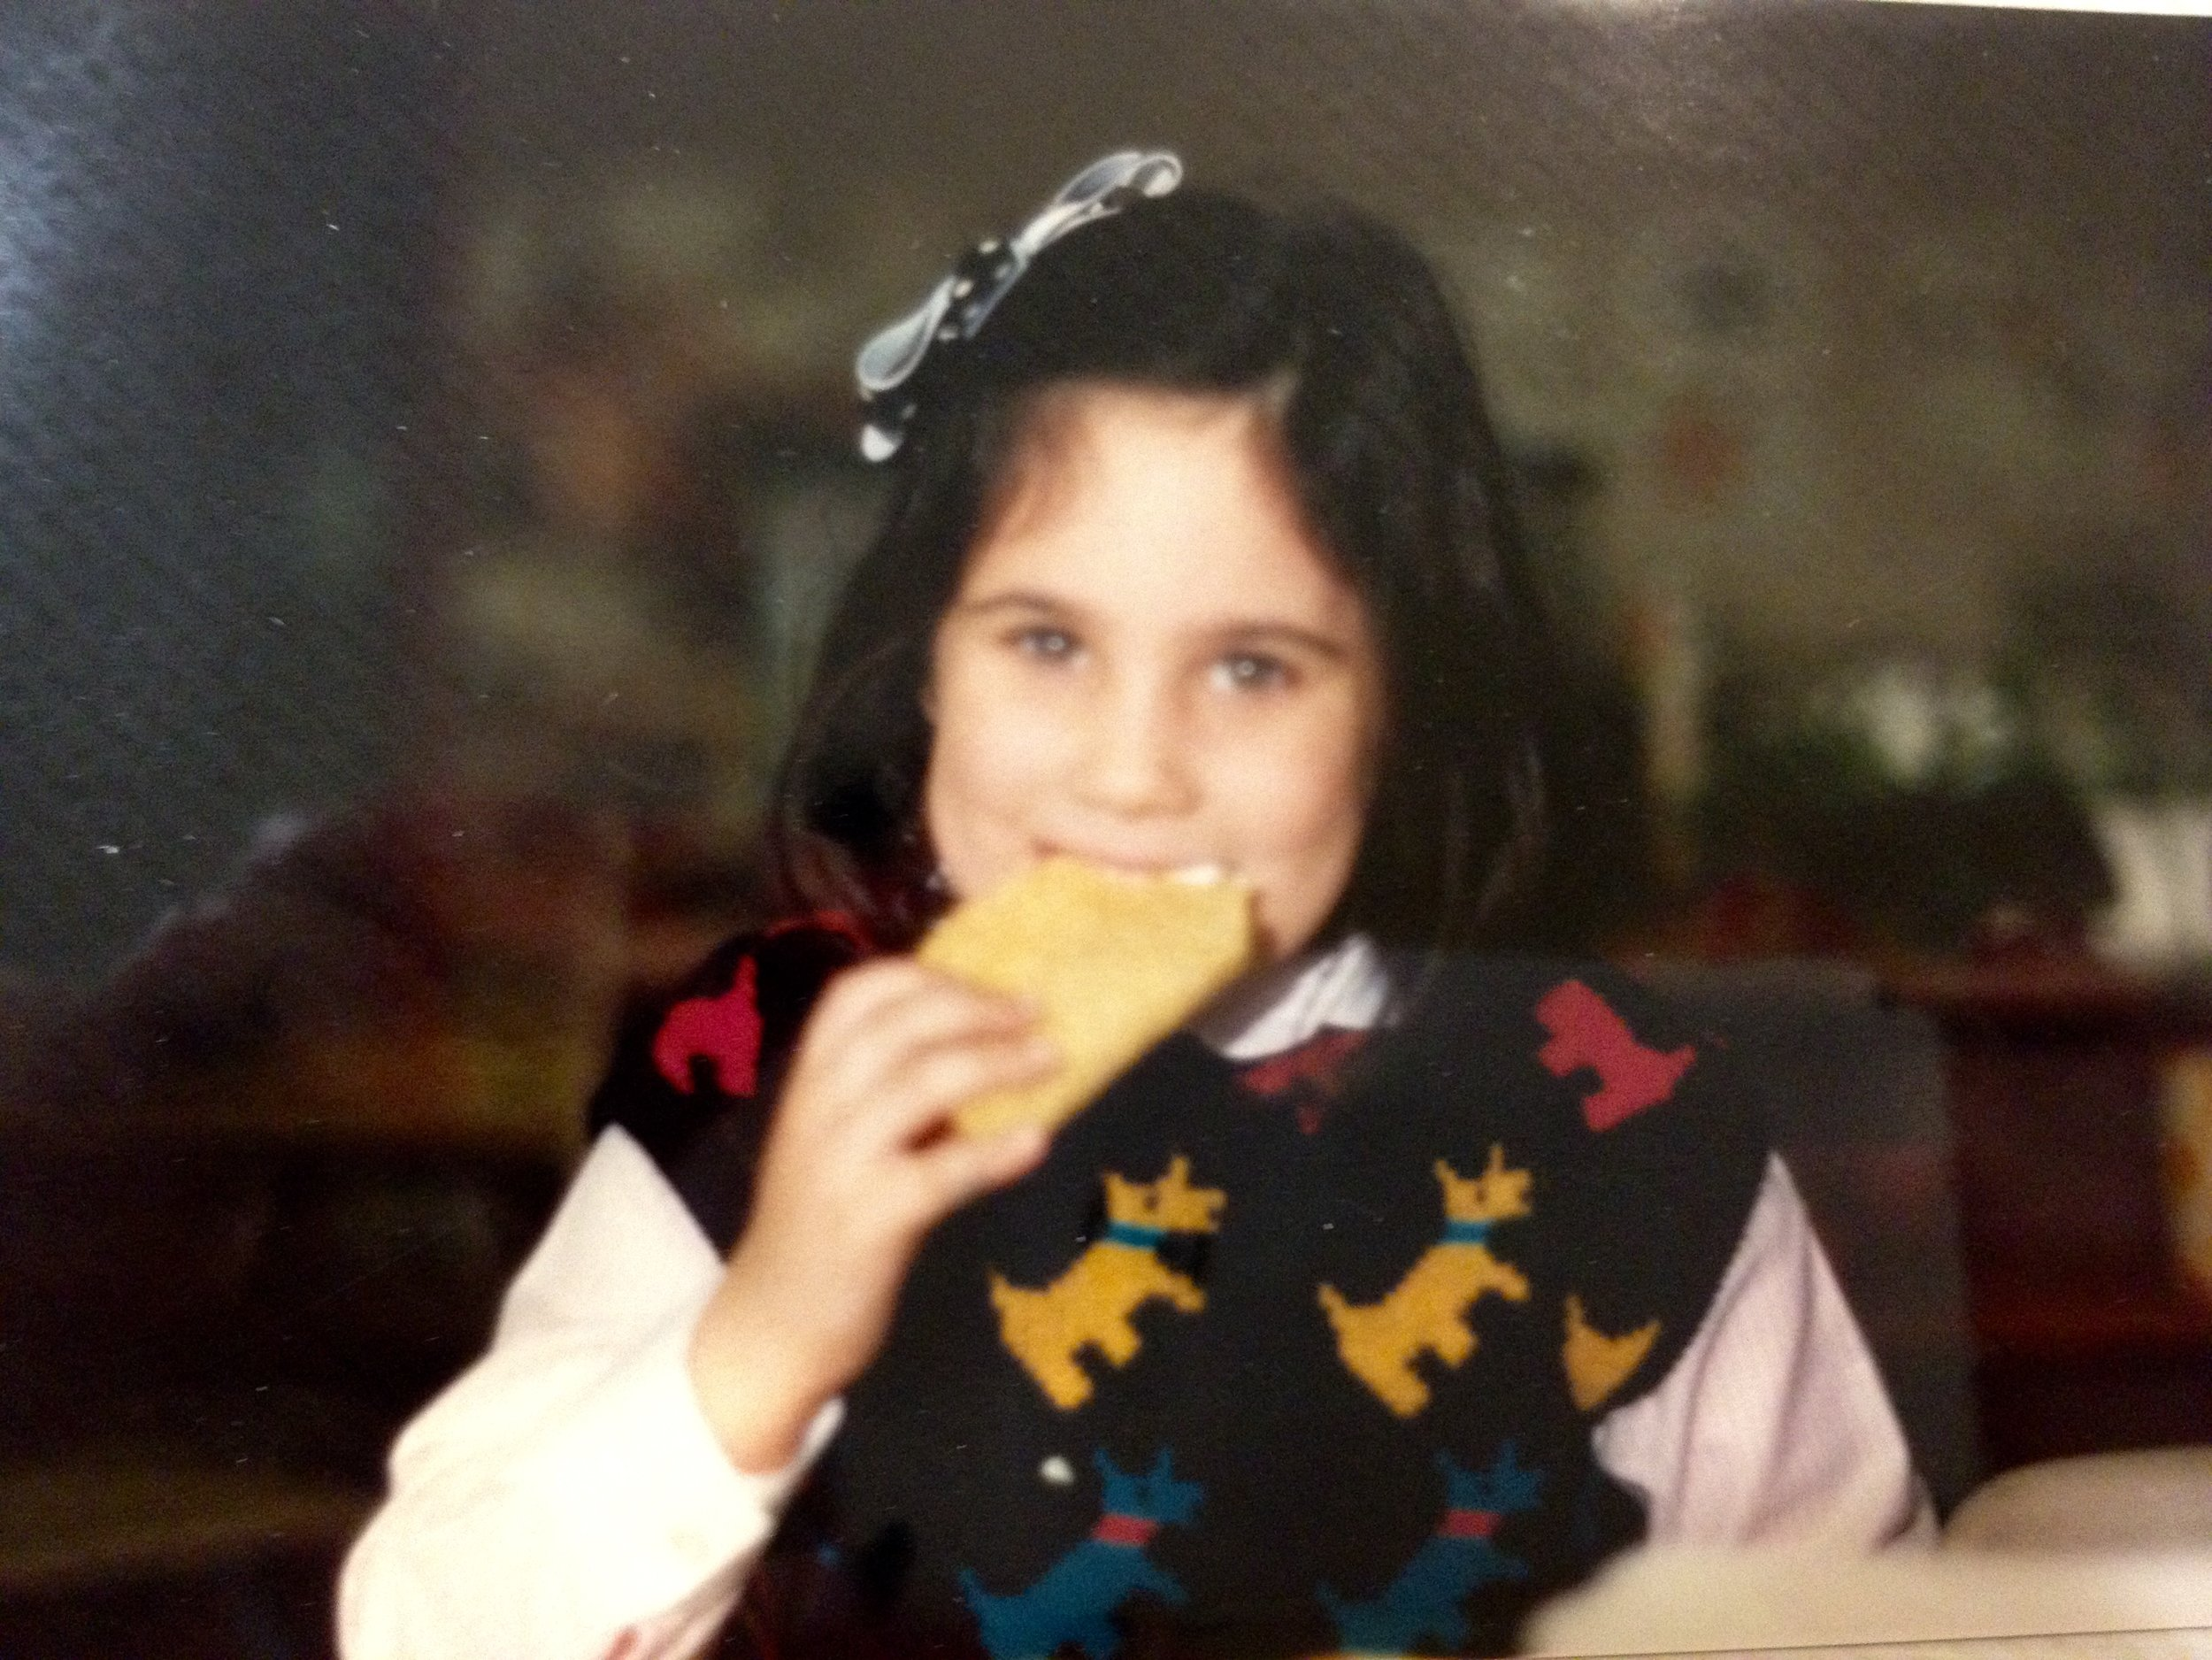 Max's sister Gabriel loving Tacos from an early age